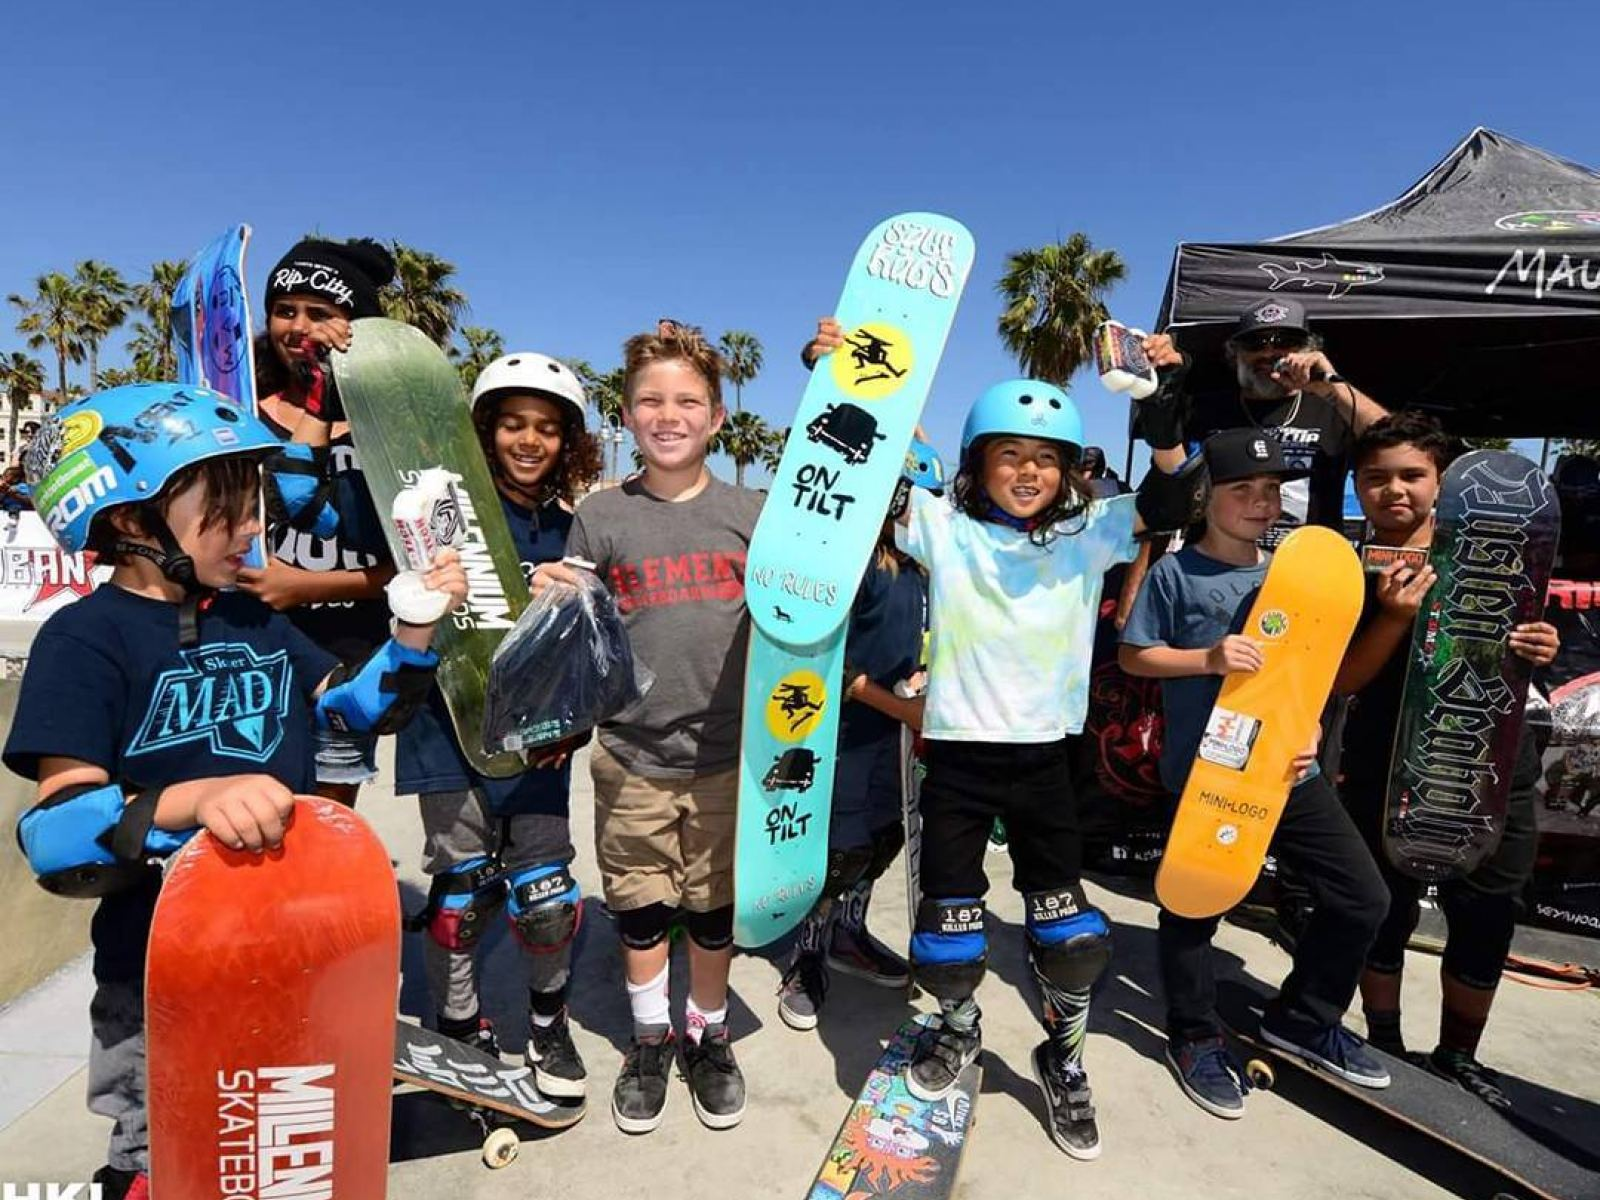 Young skateboarders at Venice Beach Skate Park